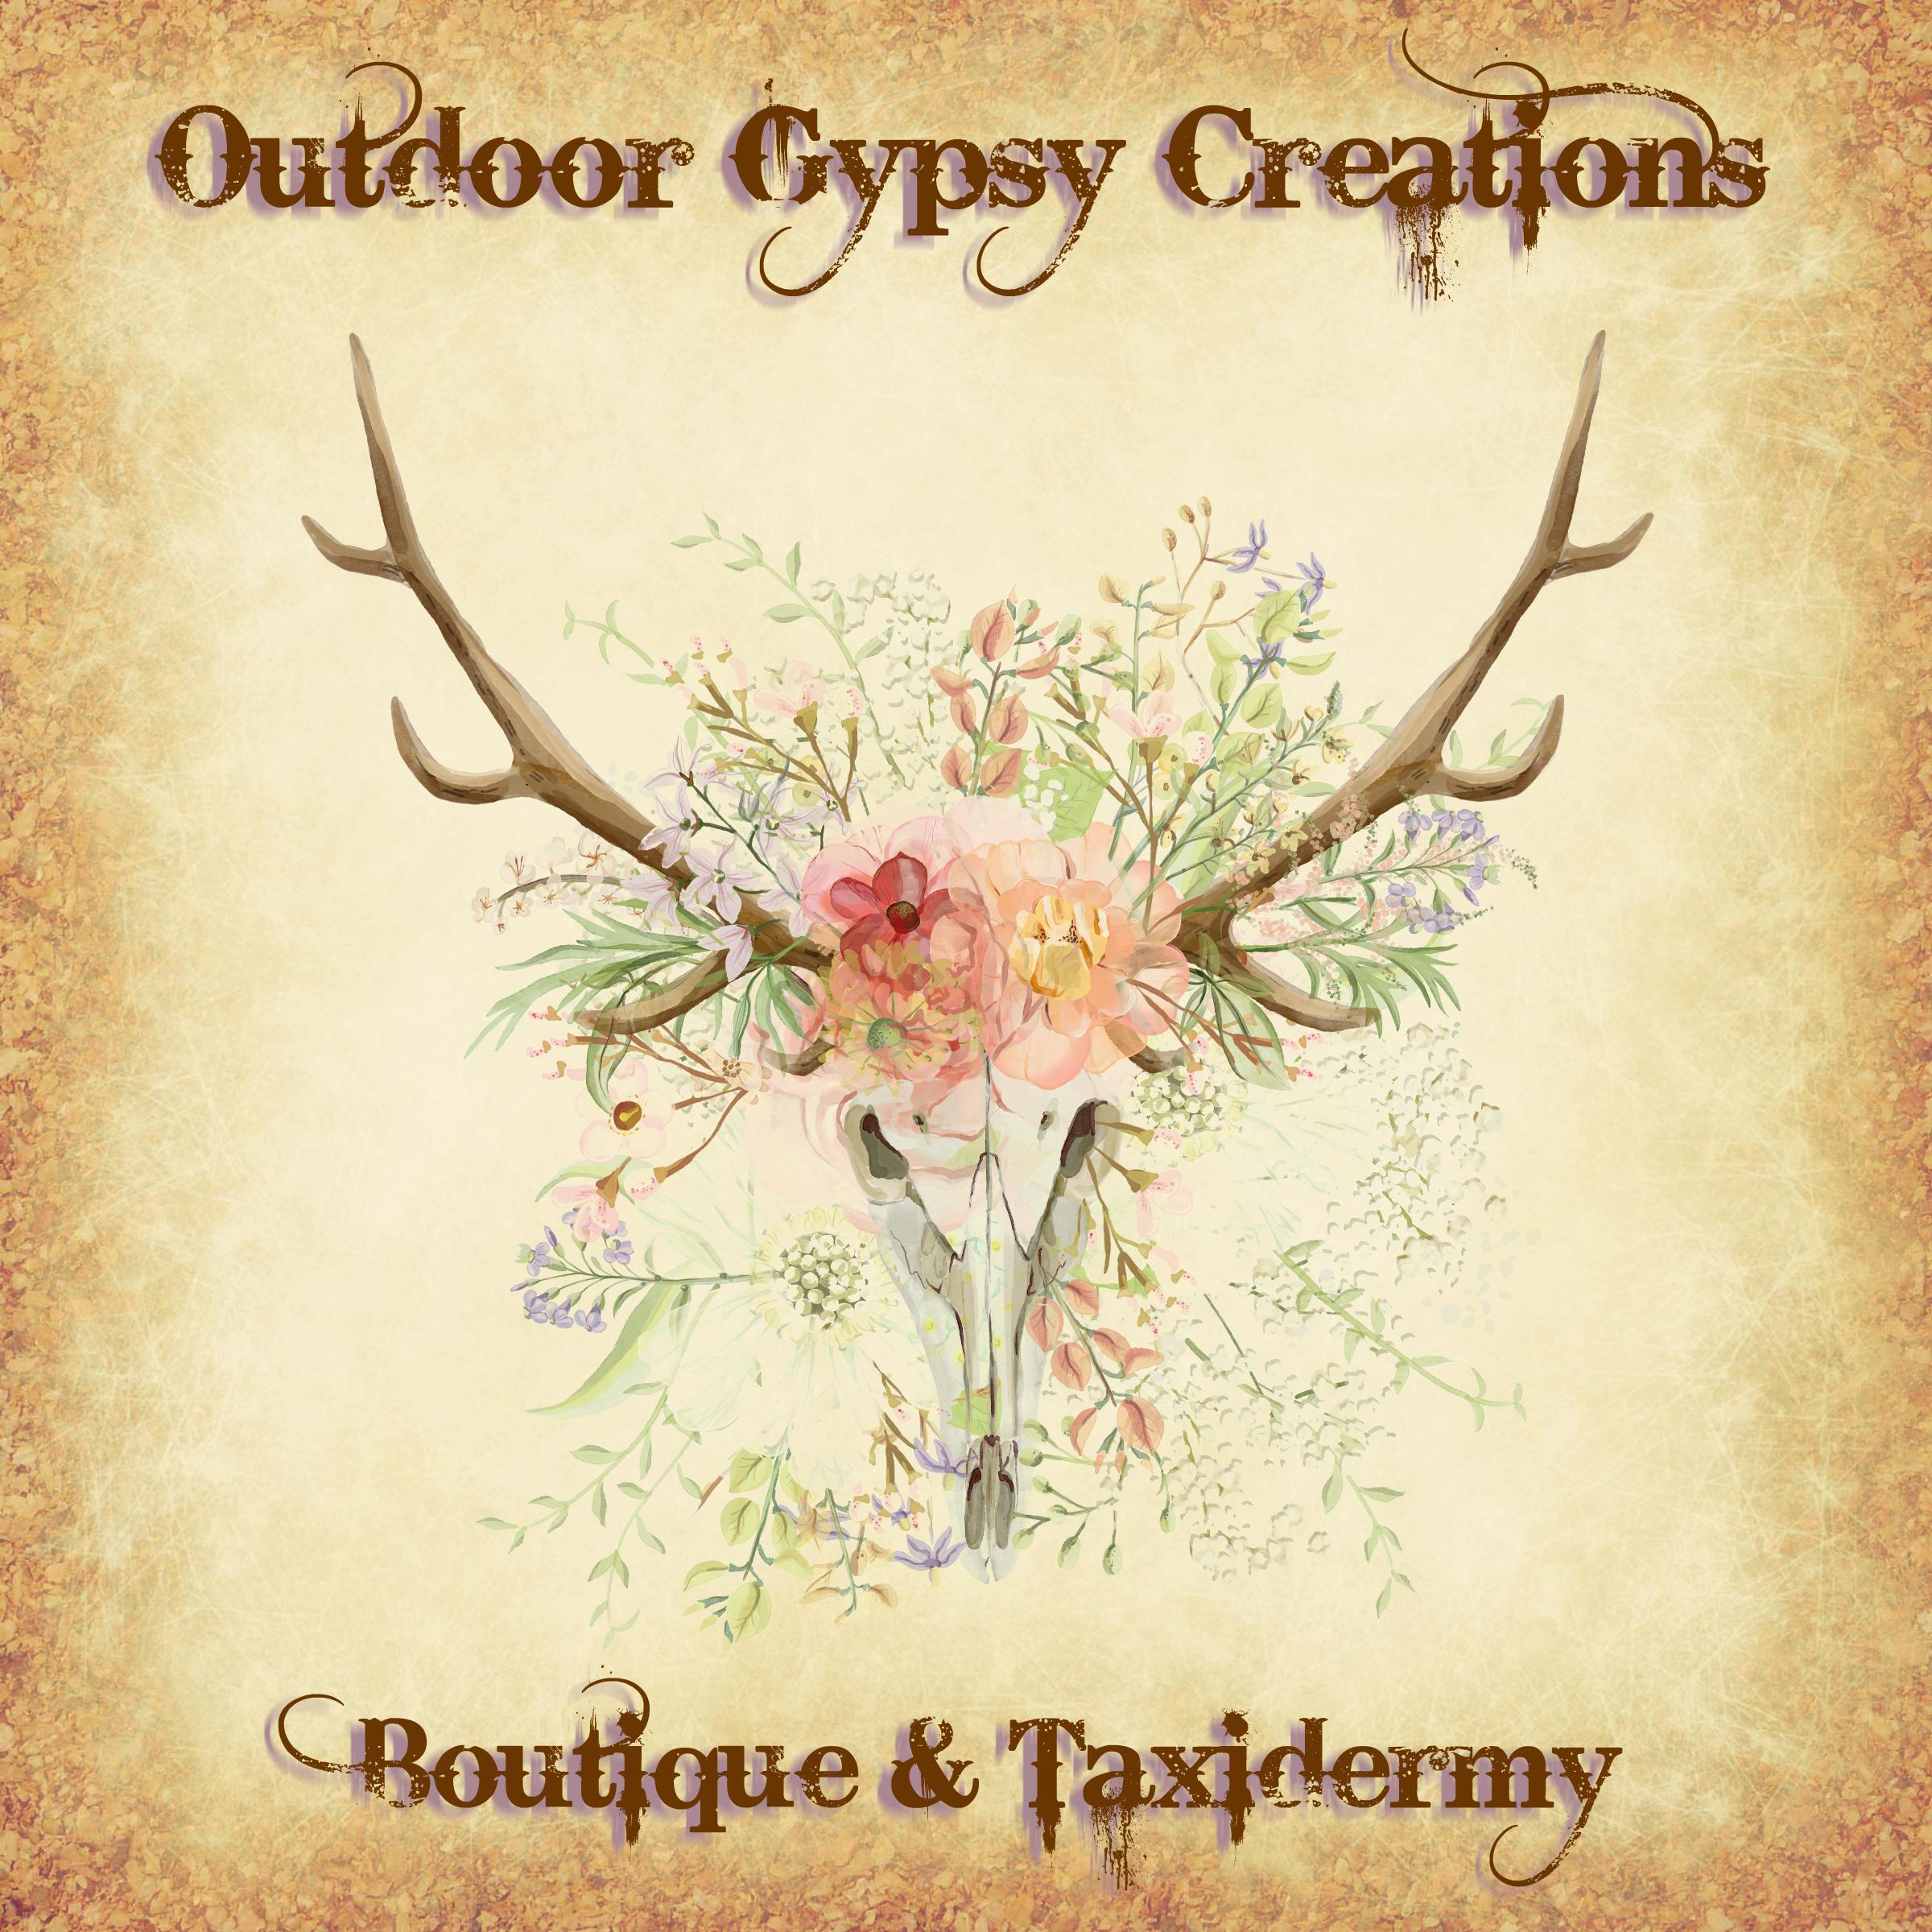 Outdoor Gypsy Creations Logo